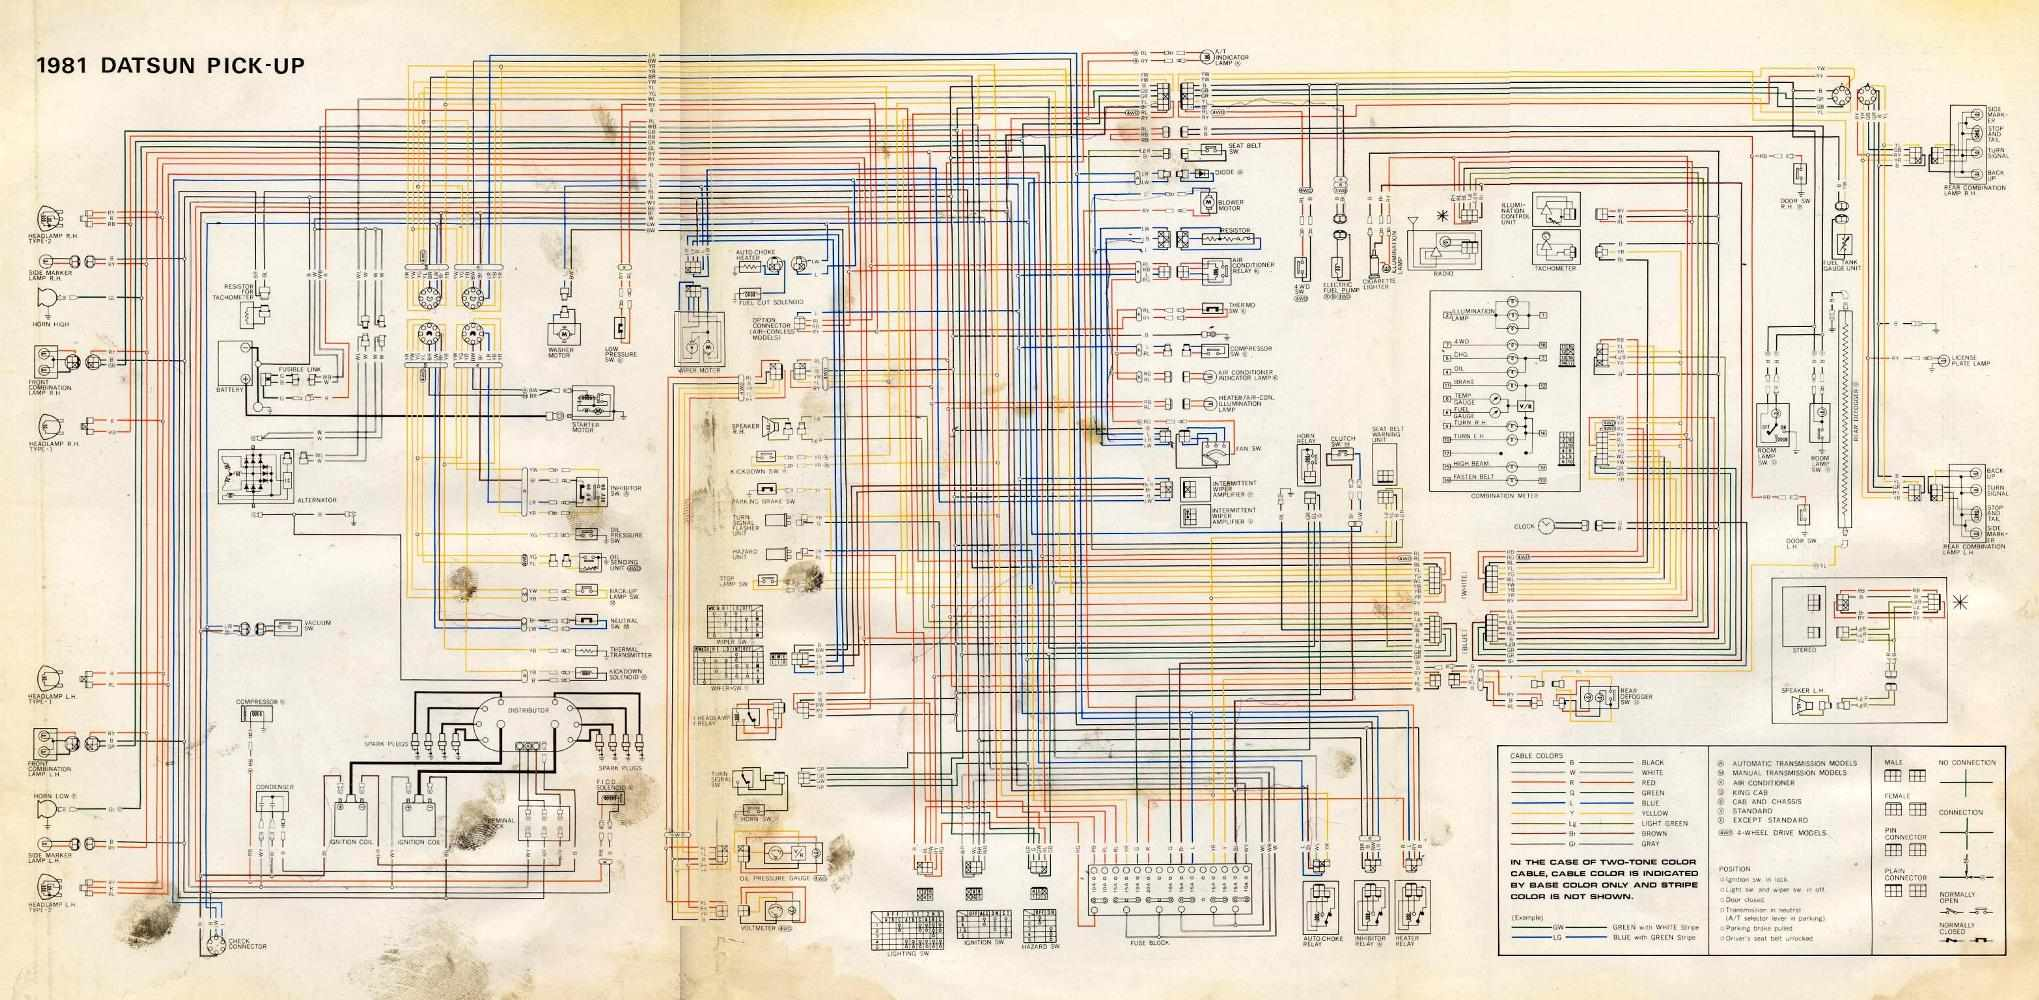 73 Blazer Wiring Diagram Books Of 1973 Gmc Sierra Engine Car Diagrams App Auto Electrical Rh Stanford Edu Uk Co Gov Hardtobelieve Me